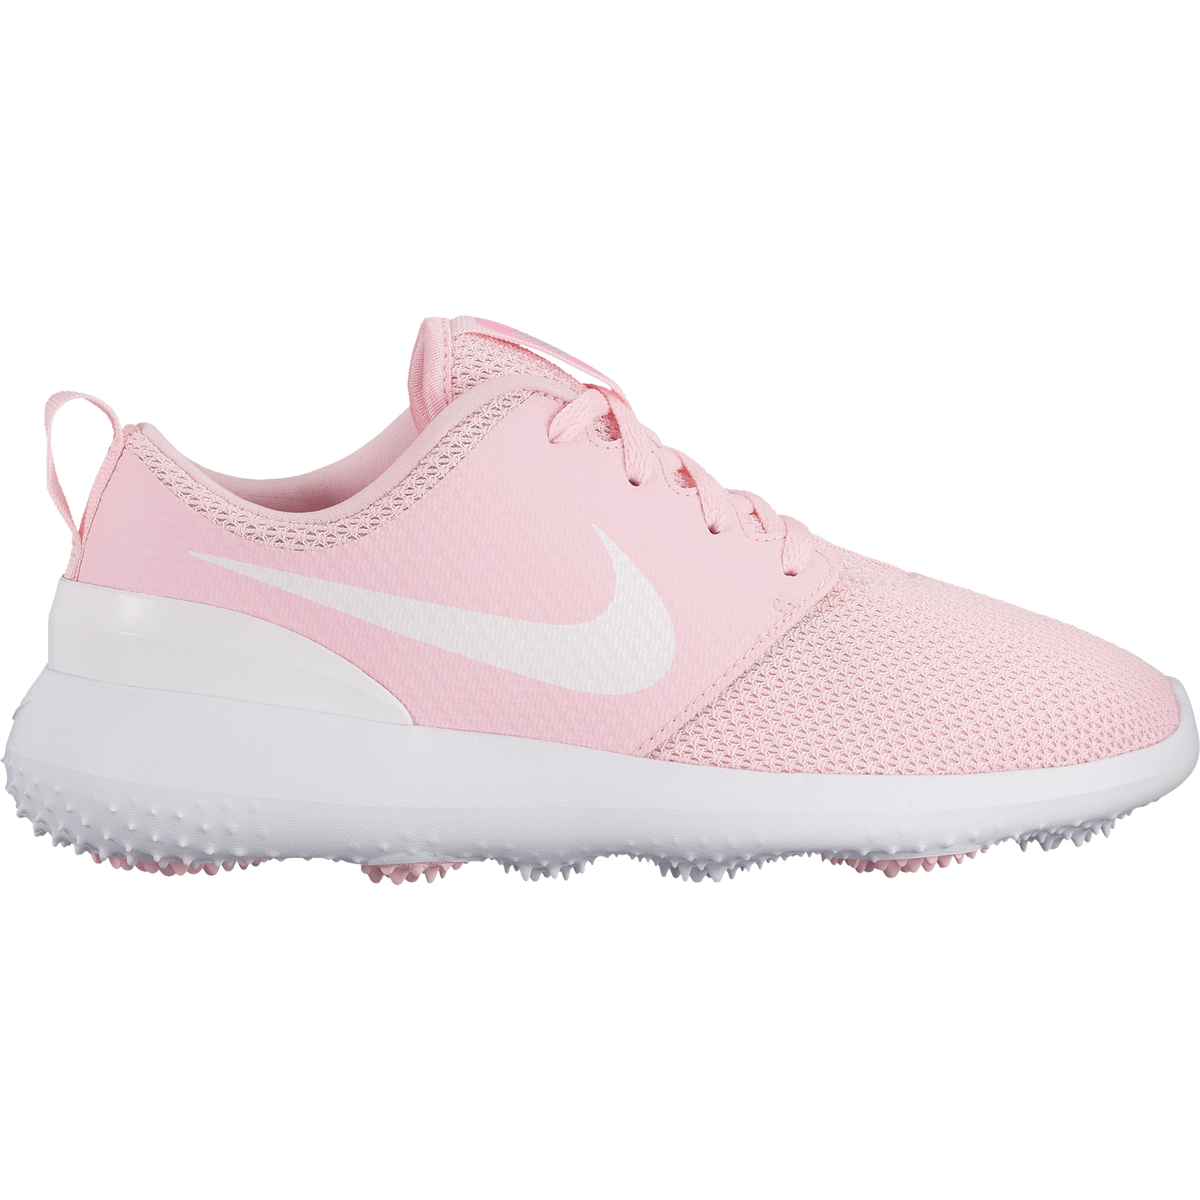 hot sale online f088a 809e4 Images. Nike Roshe G Women39s Golf Shoe ...